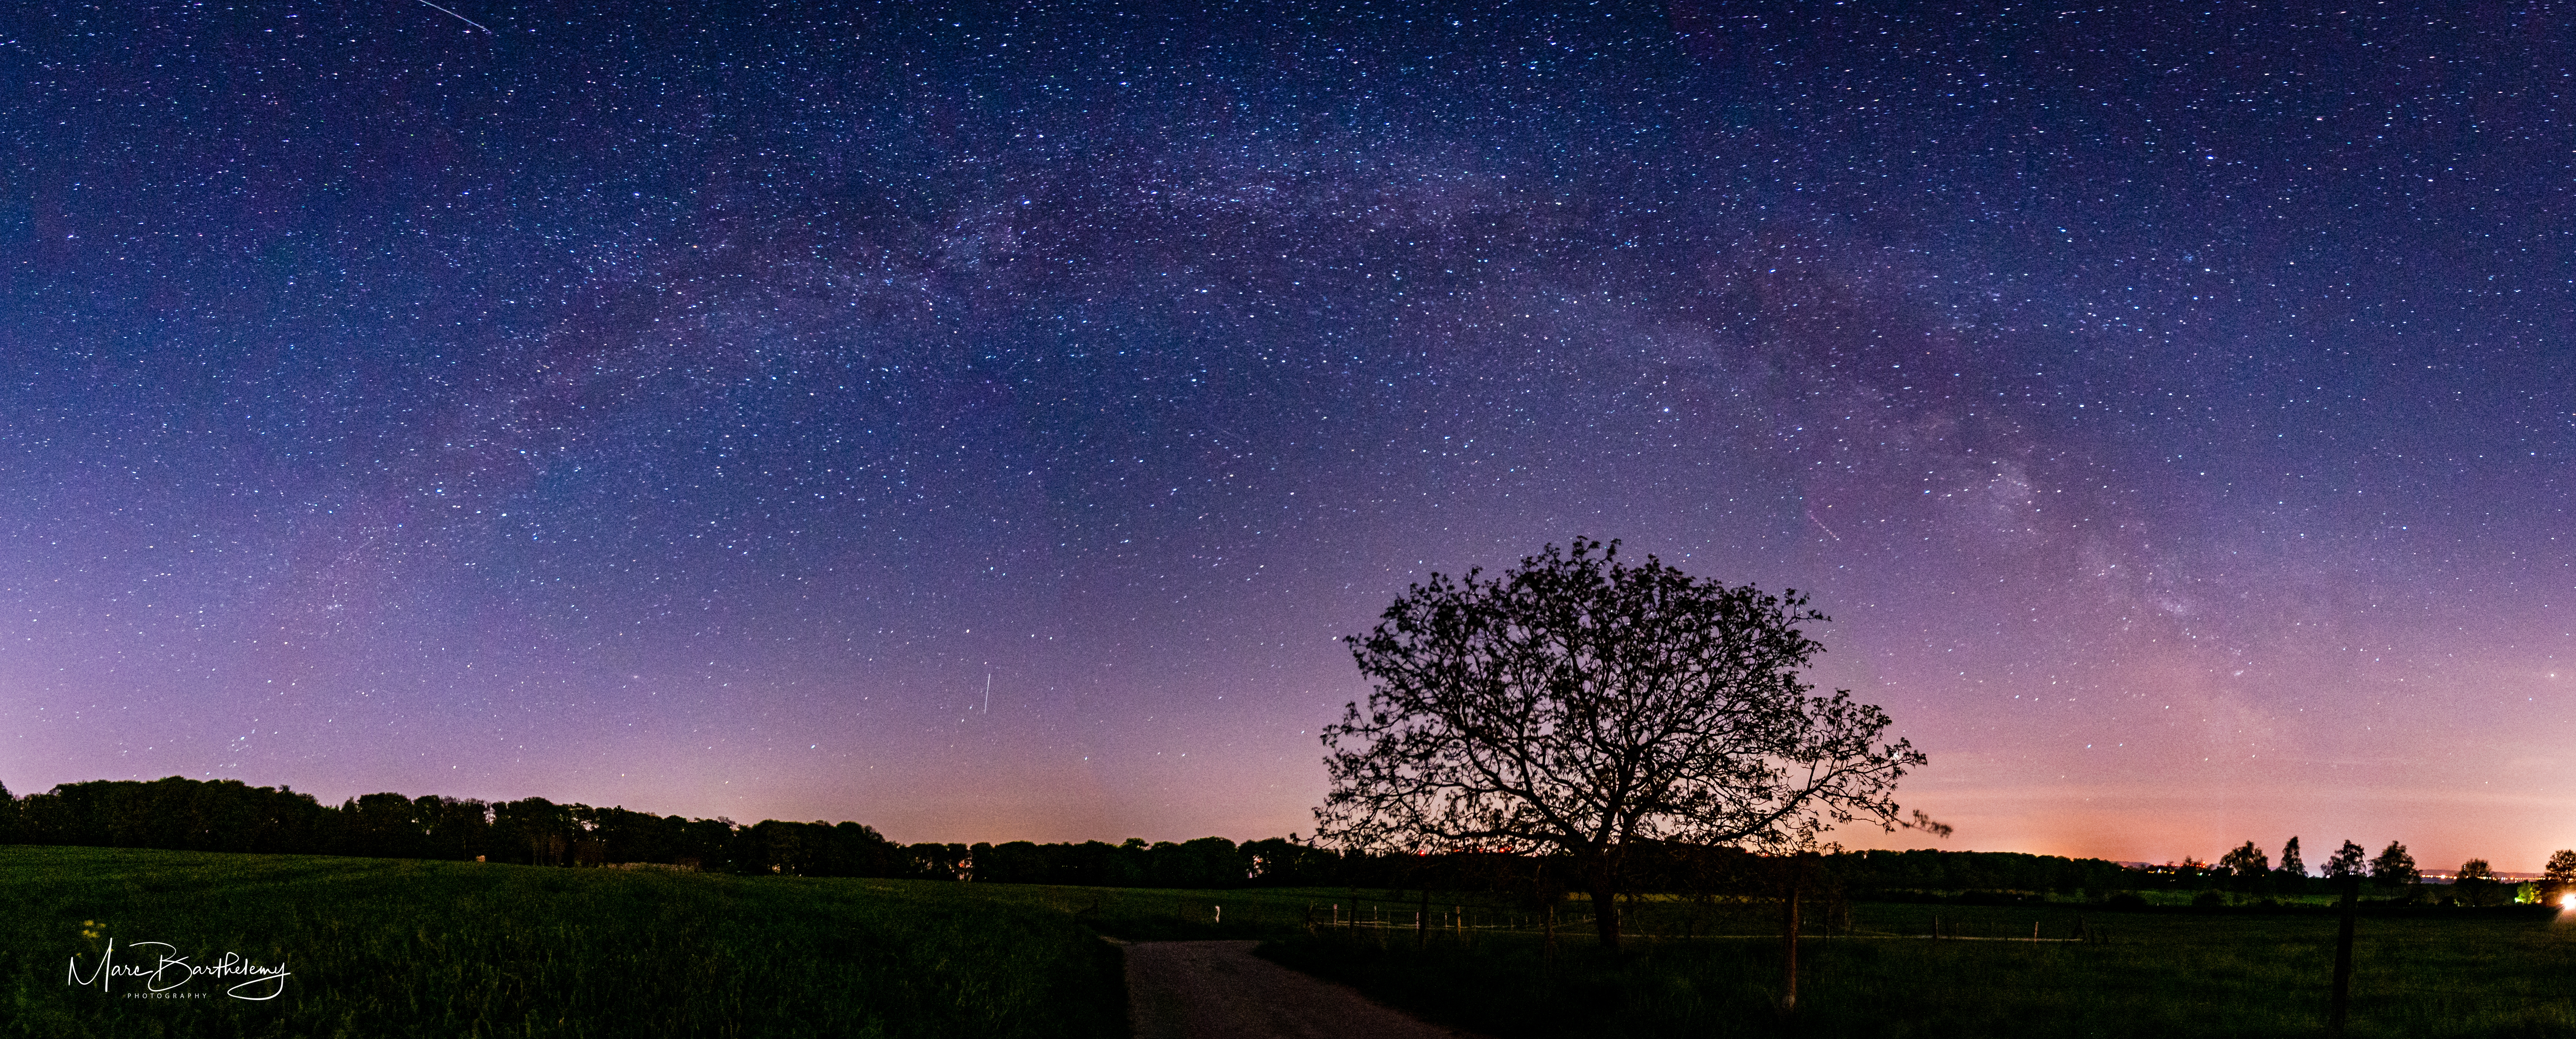 Welfringen Milky Way